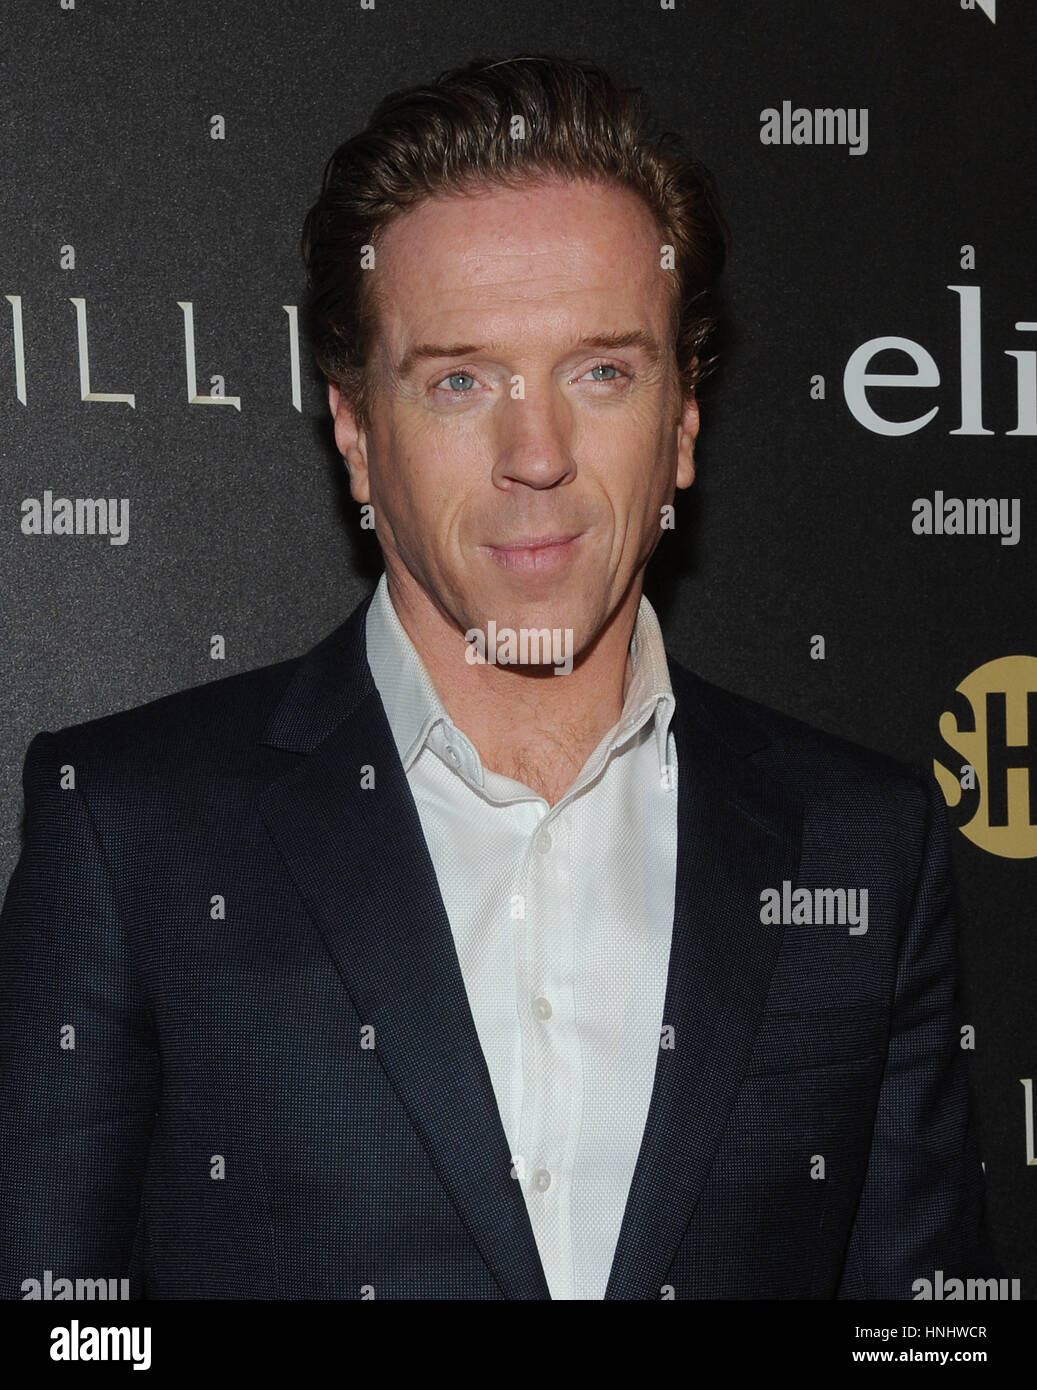 New York, USA. 13th February 2017. Damian Lewis attends the 'Billions' Season 2 premiere at Cipriani 25 - Stock Image